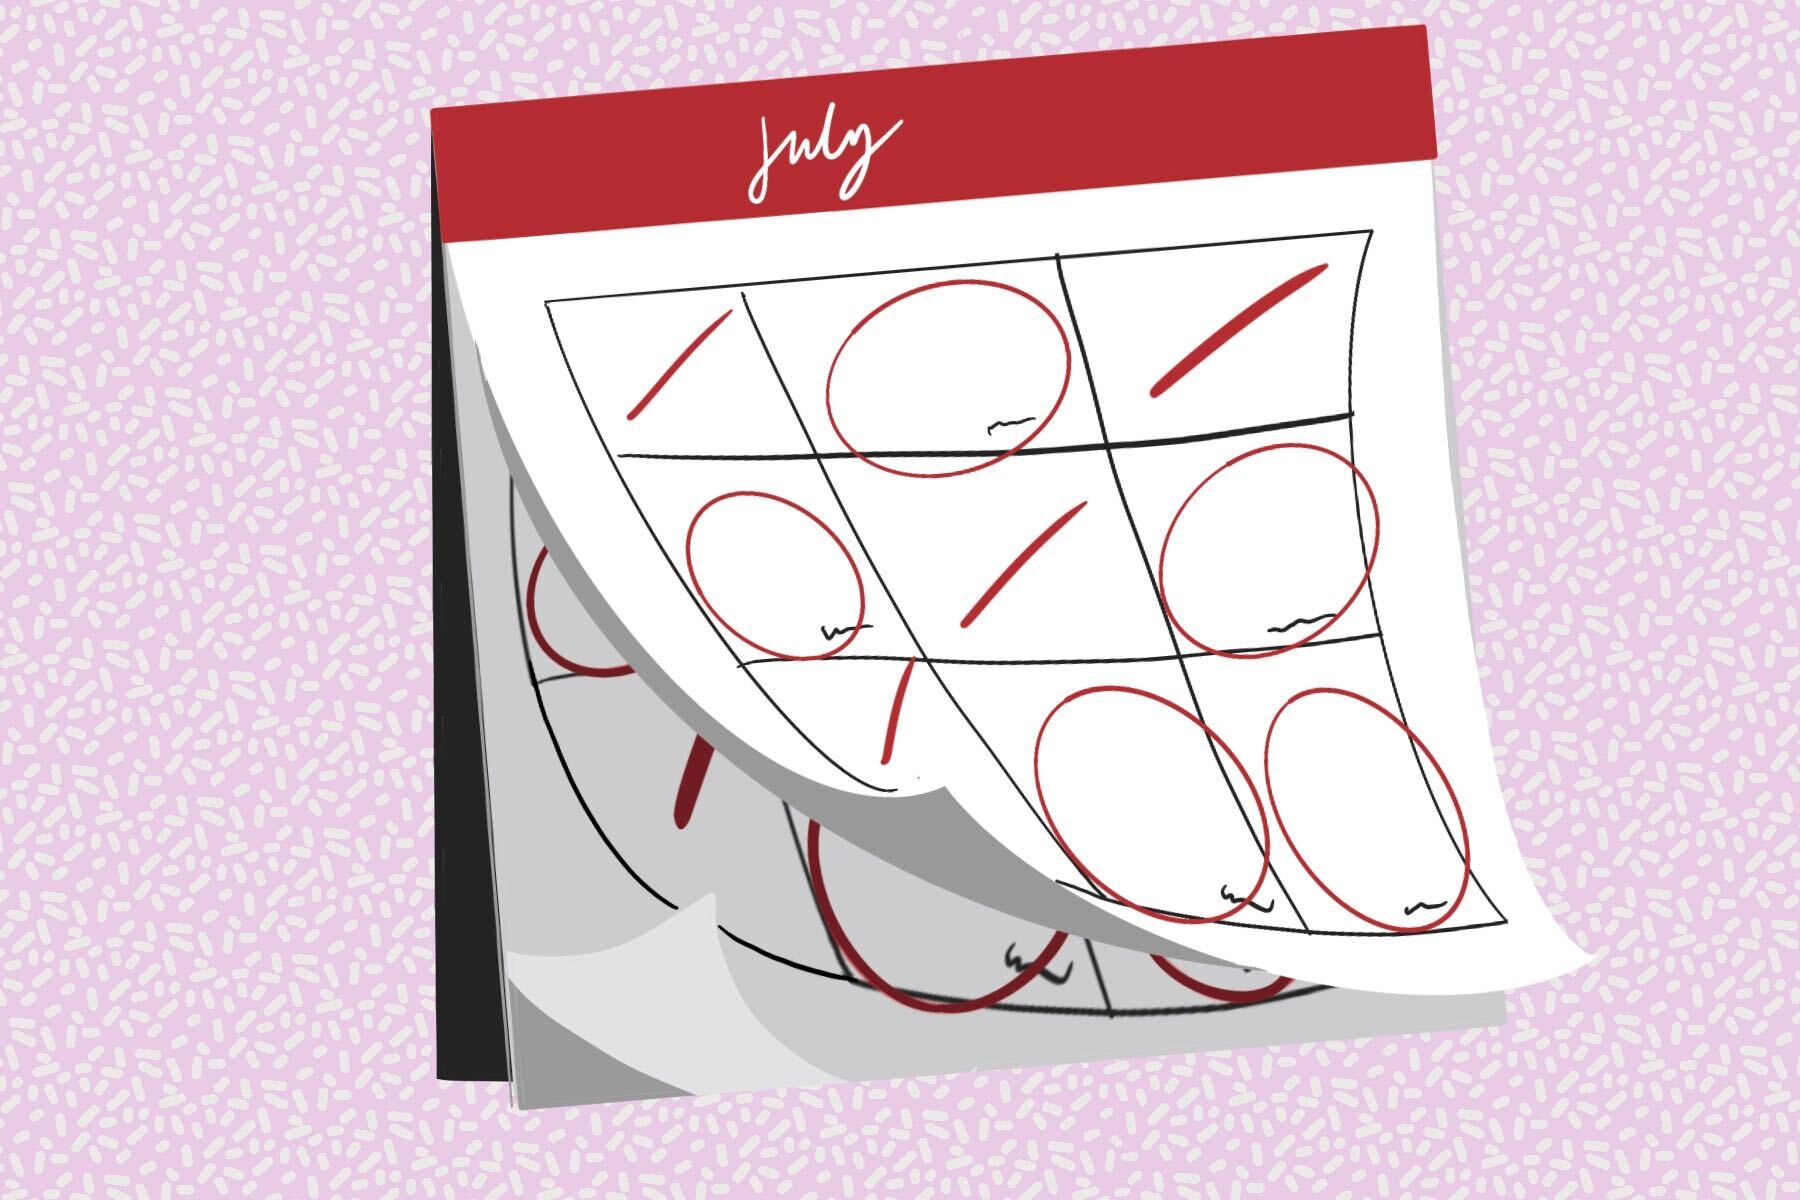 In an article about National Days, an illustration by Ash Ramirez of a calendar on the month of July